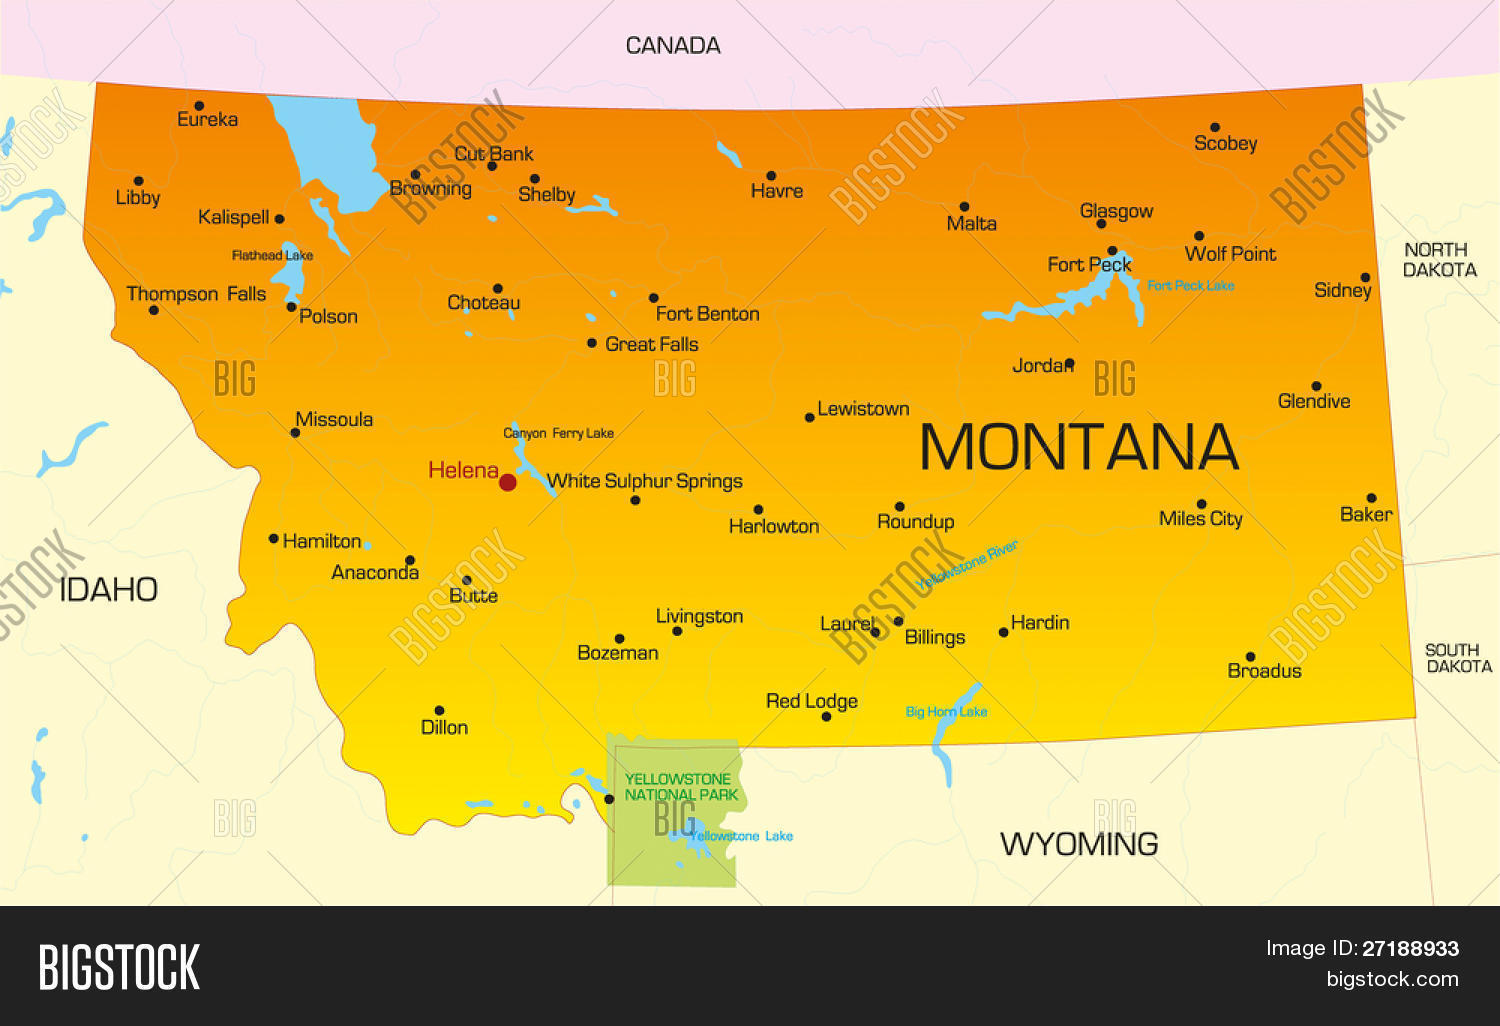 Vector Color Map Vector & Photo (Free Trial) | Bigstock on snowflake in montana, home in montana, dinosaurs in montana, animals in montana, usa map in miami, butterflies in montana, turkey in montana, tent in montana, usa map from montana,